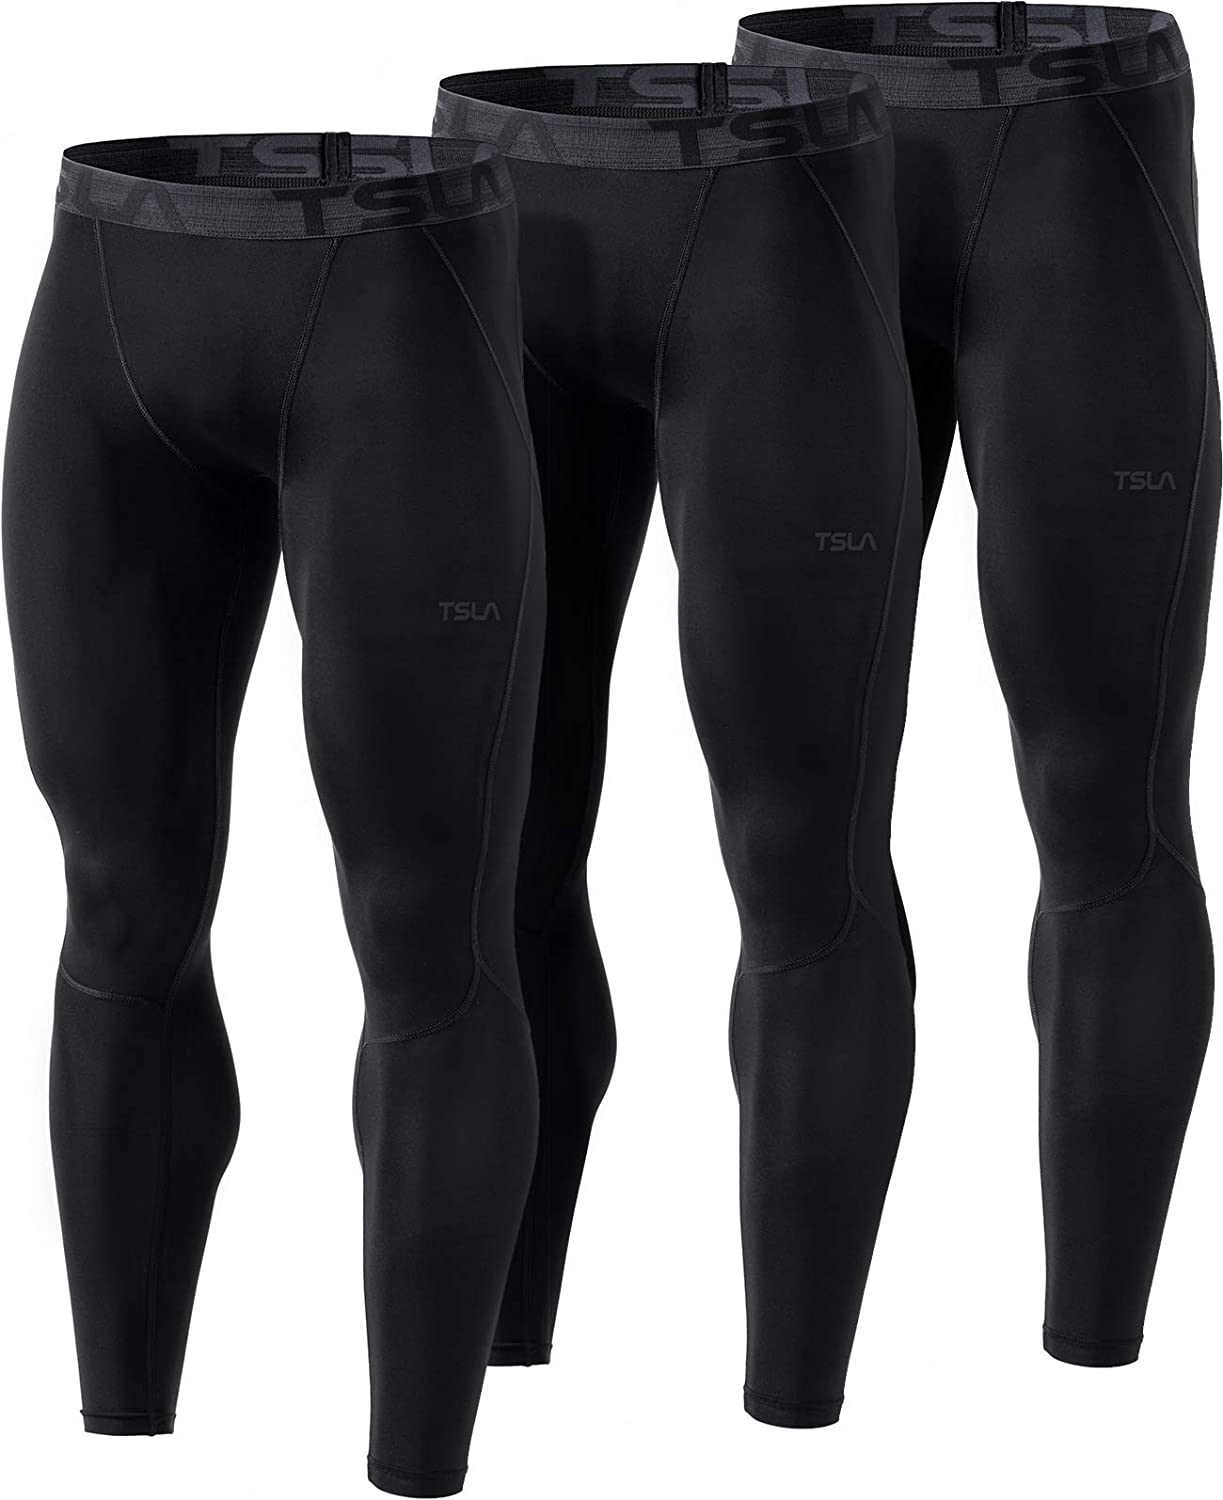 TSLA 1, 2 or 3 Pack Mens Compression Pants Running Tights Workout Leggings, Cool Dry Performance Boosting Baselayer